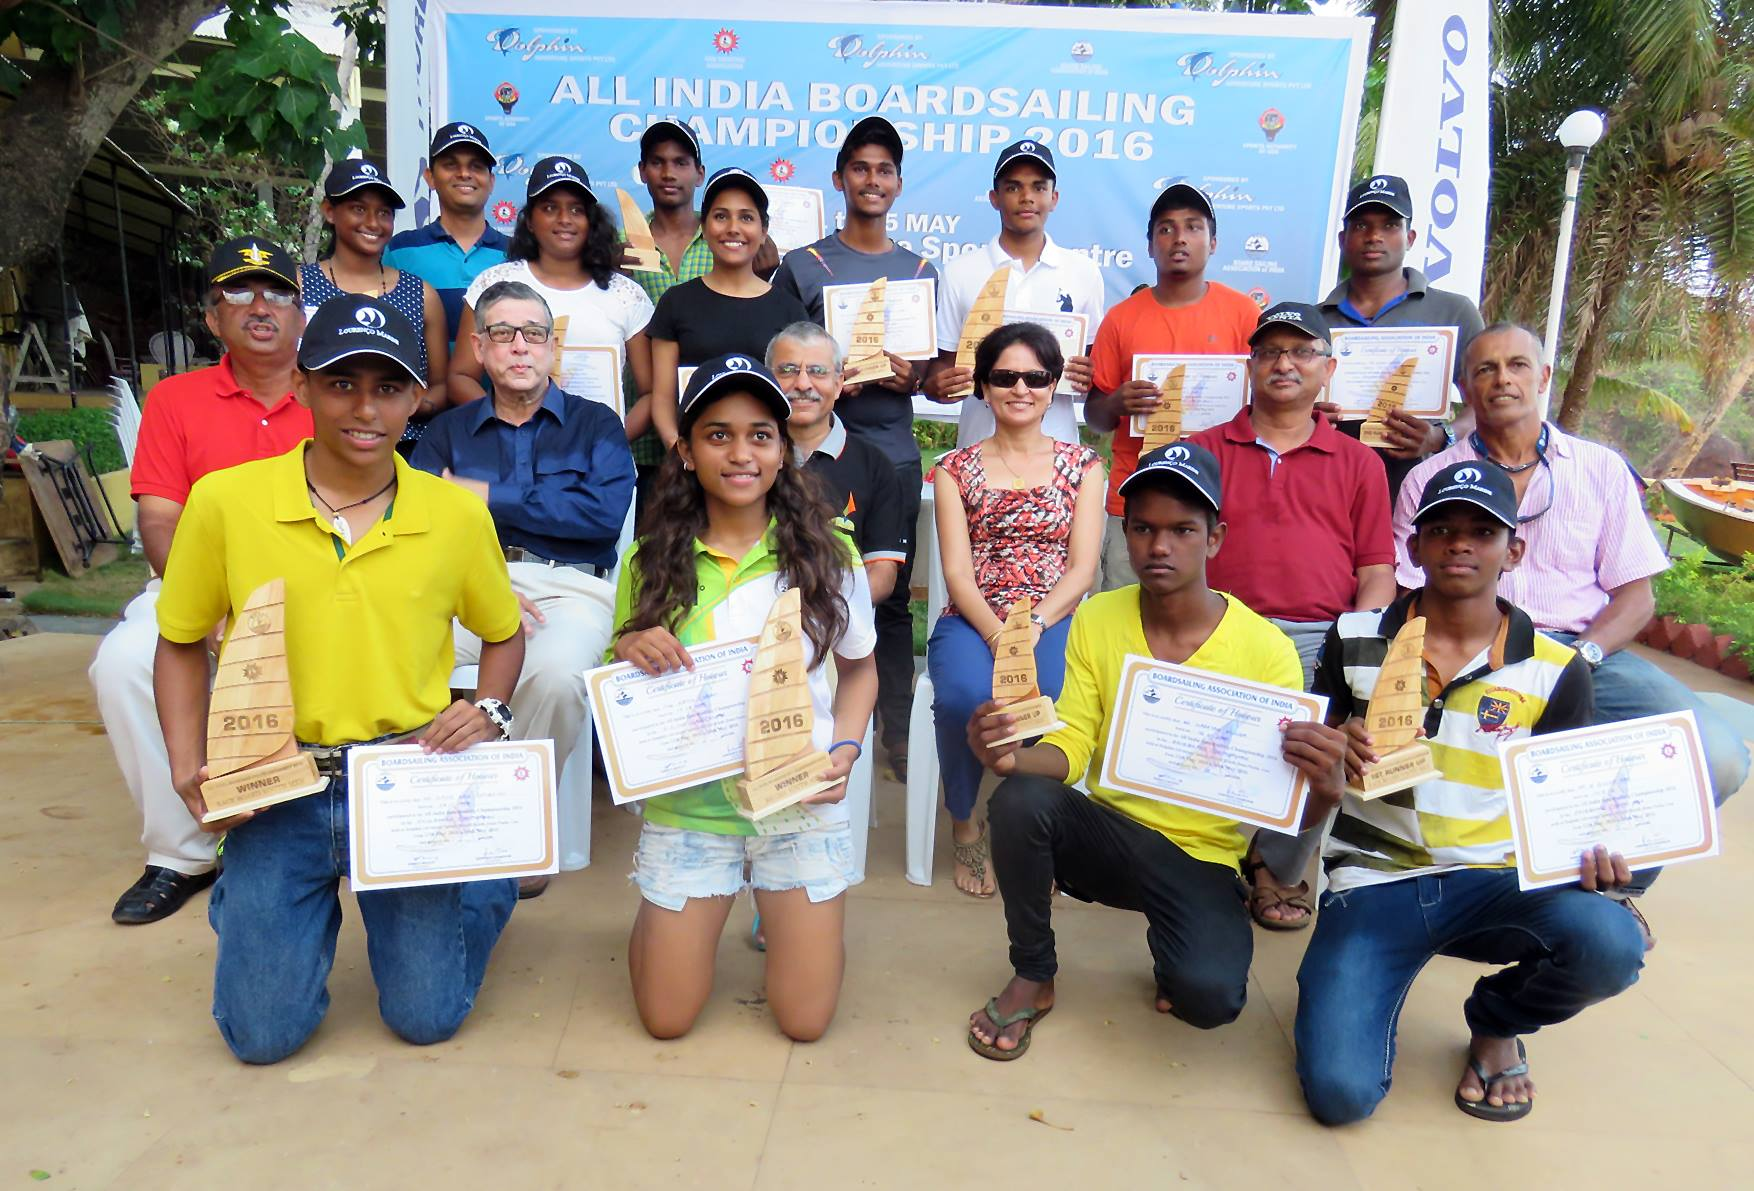 Goa yachting association national windsurfing champ